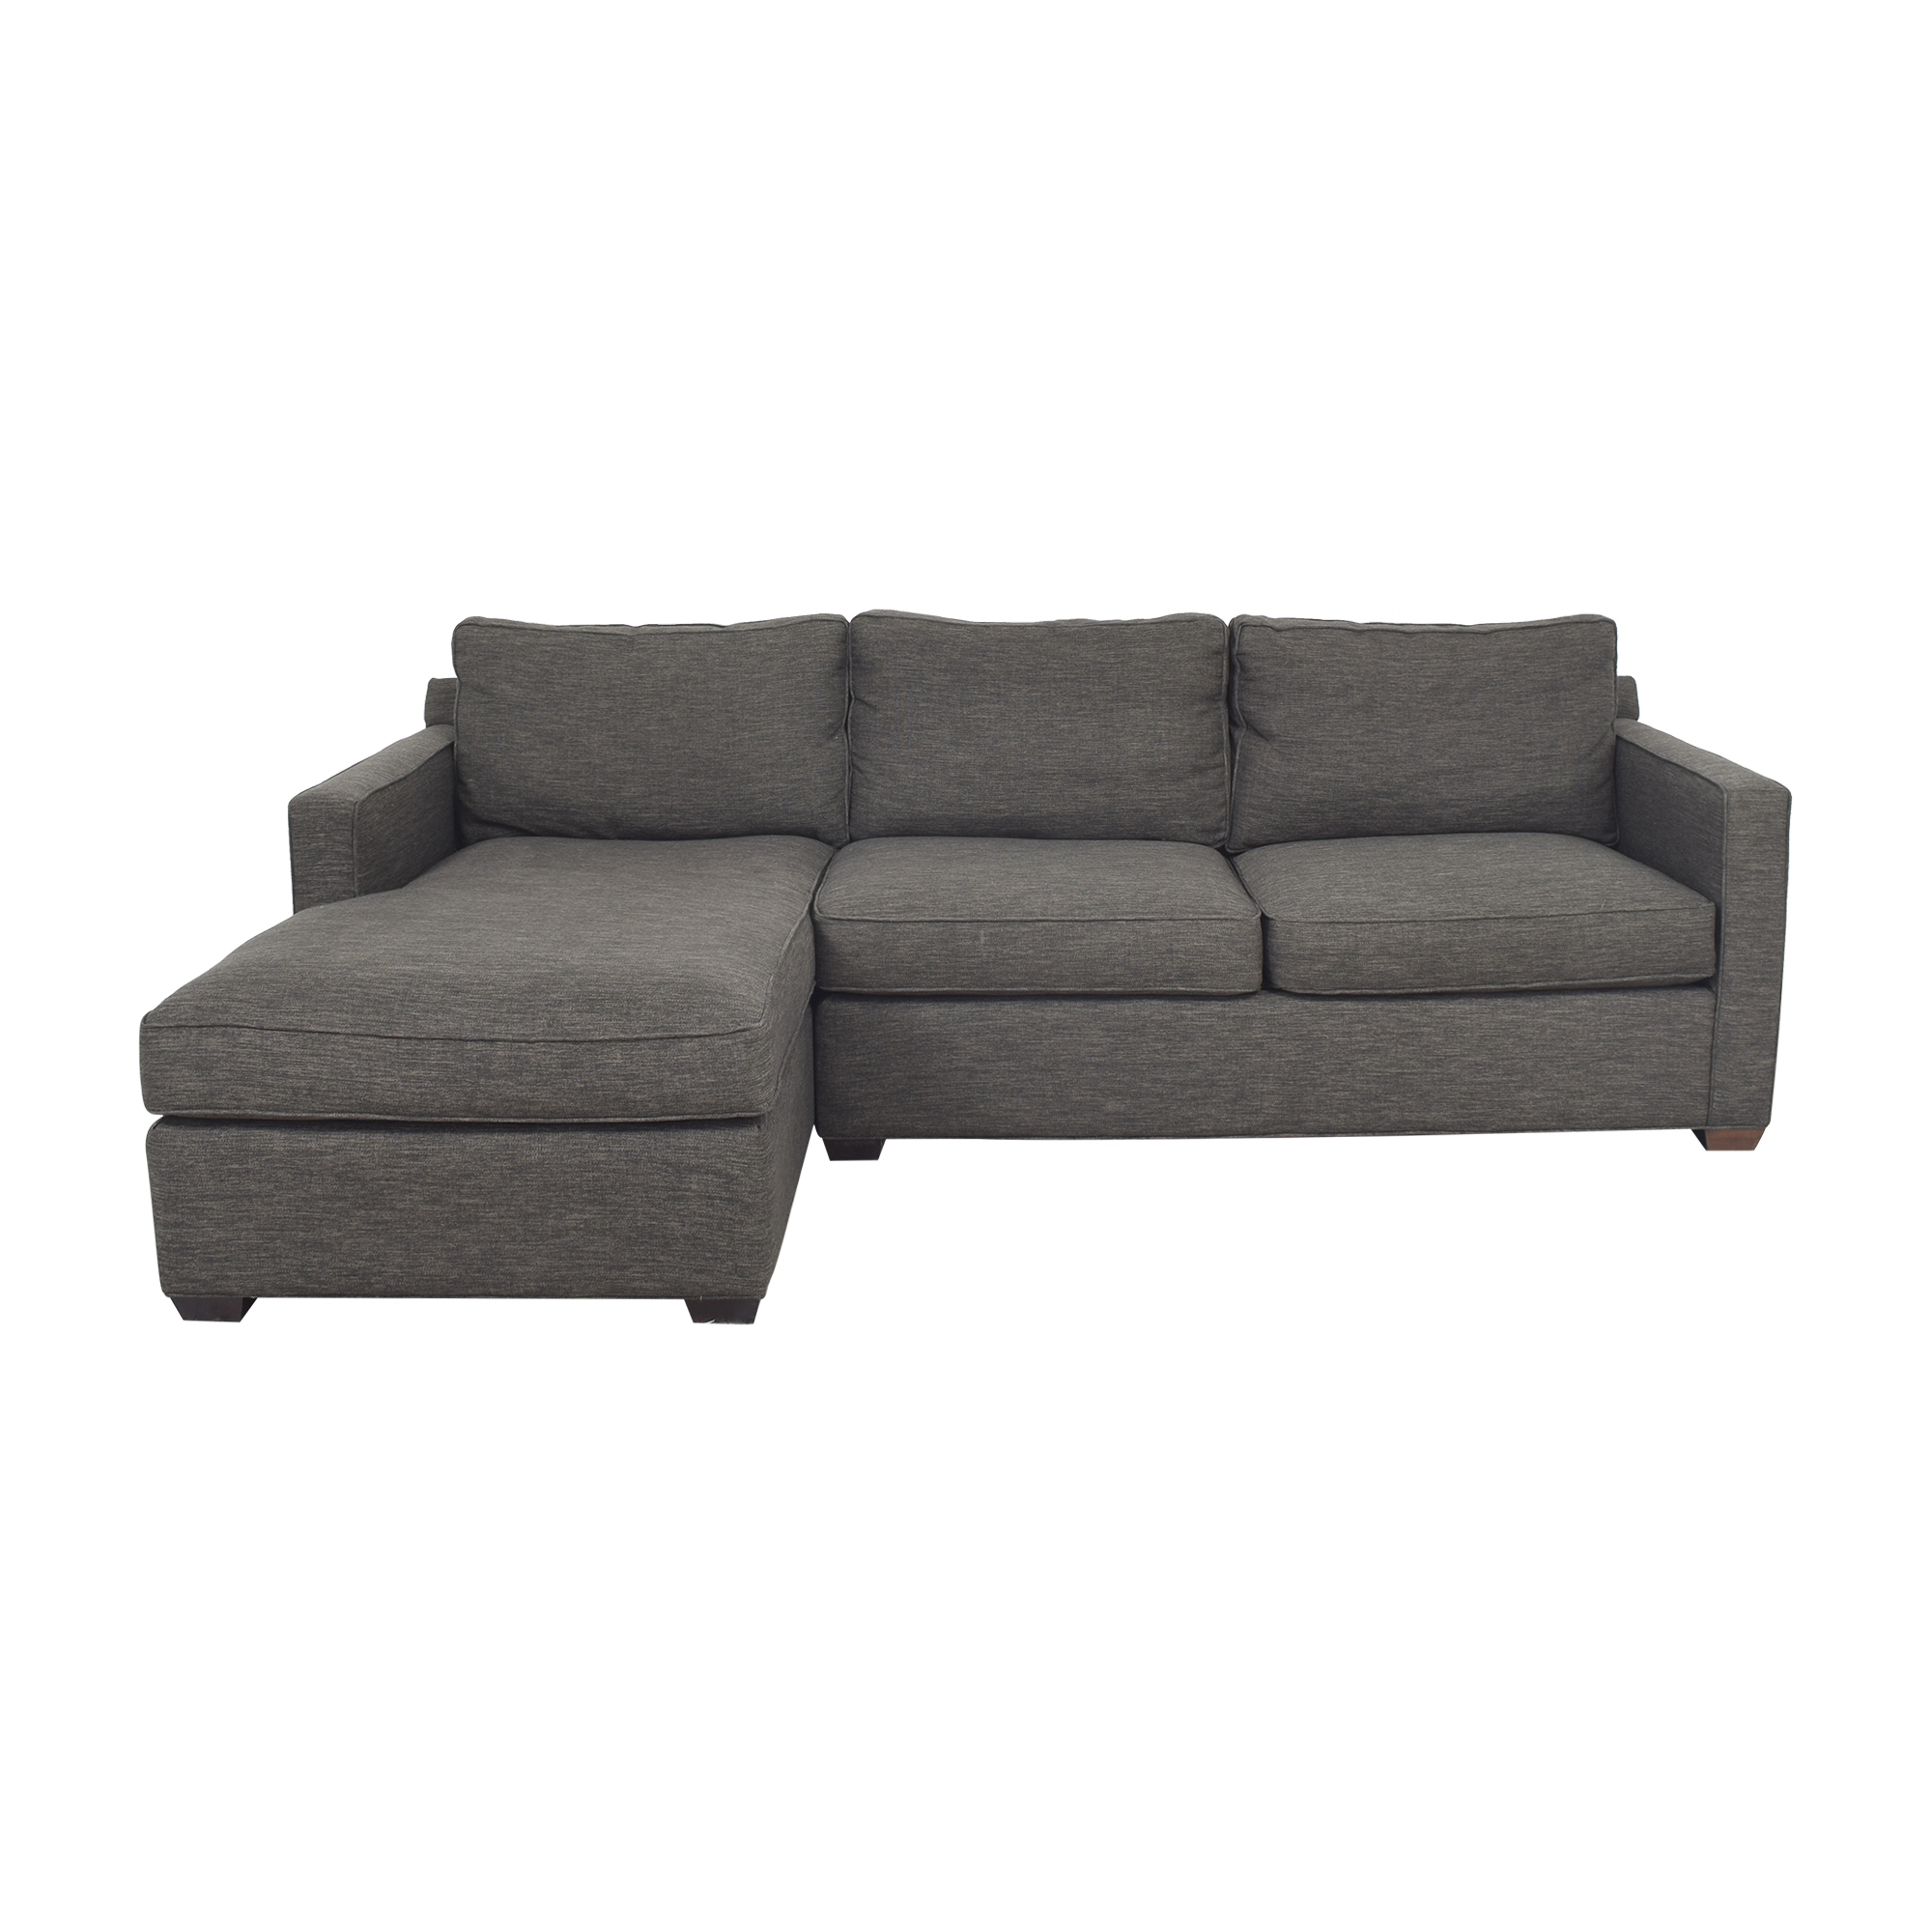 shop Crate & Barrel Crate & Barrel Barrett Two Piece Chaise Sectional Sofa online